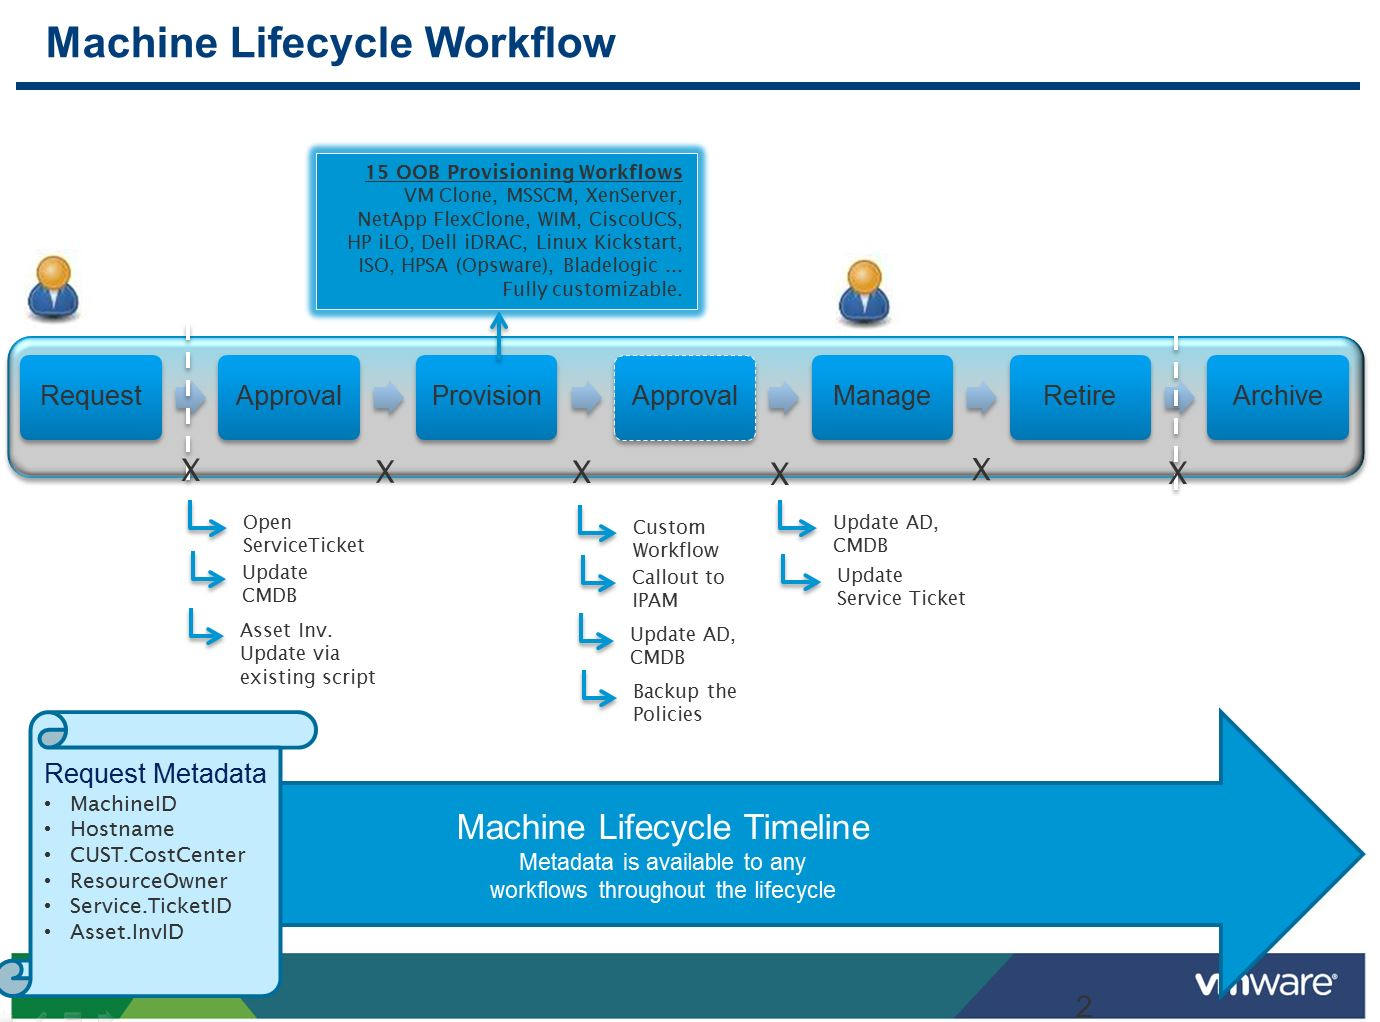 MachineLifecycleWorkflow